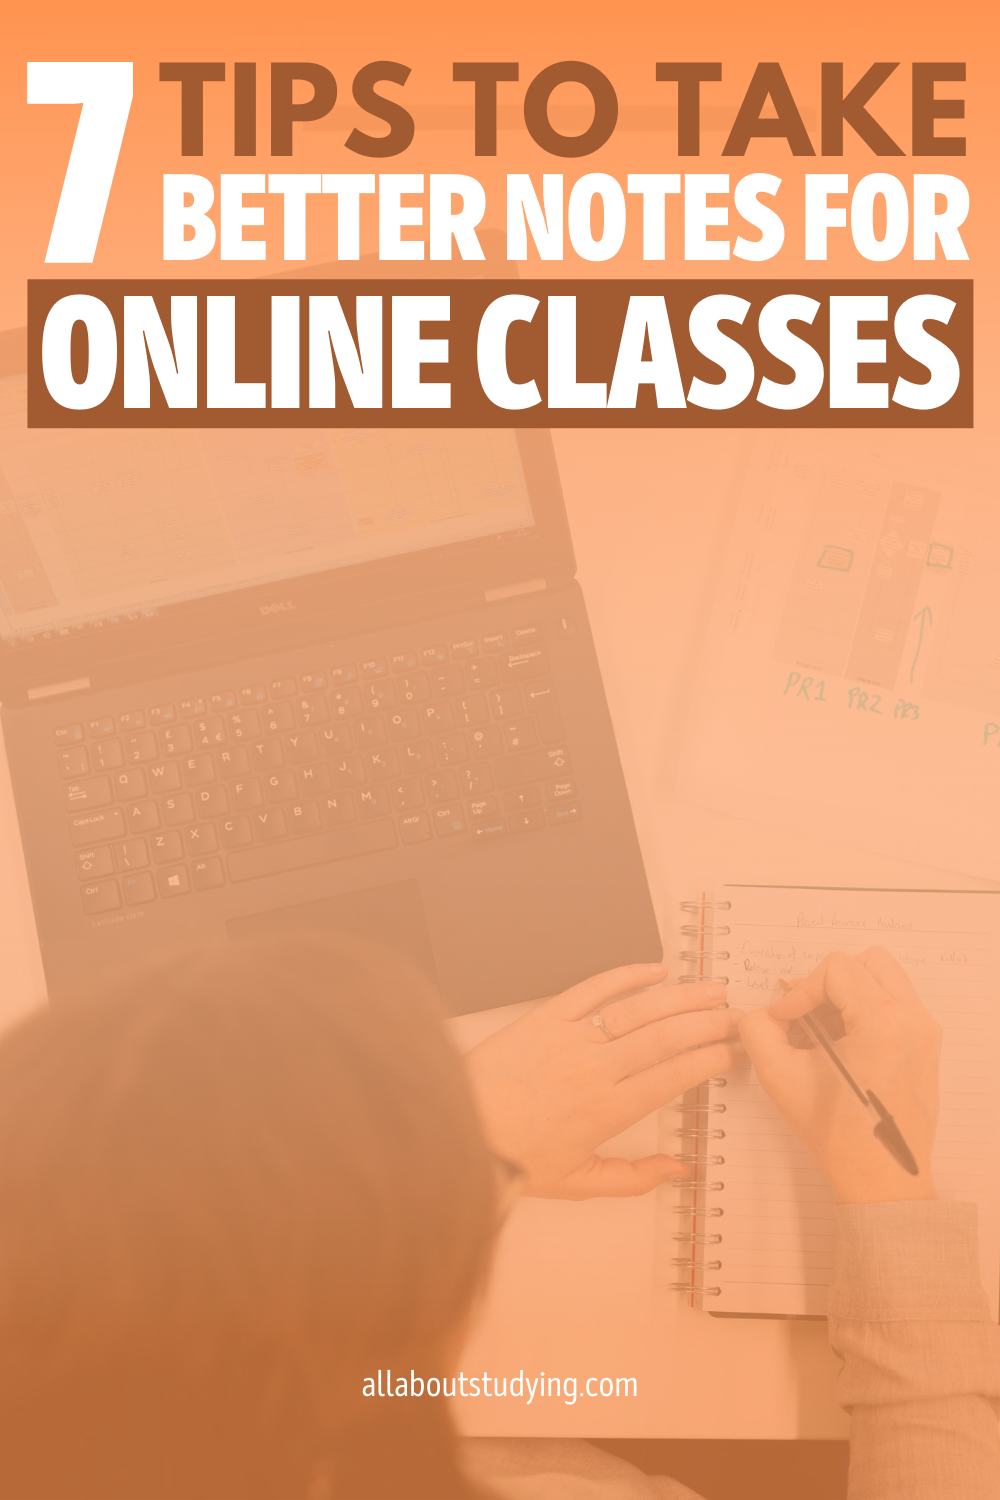 Tips On How To Take Better Notes During Online Class #takingnotes #notetaking #onlineclasses #onlinelearning #onlineschool